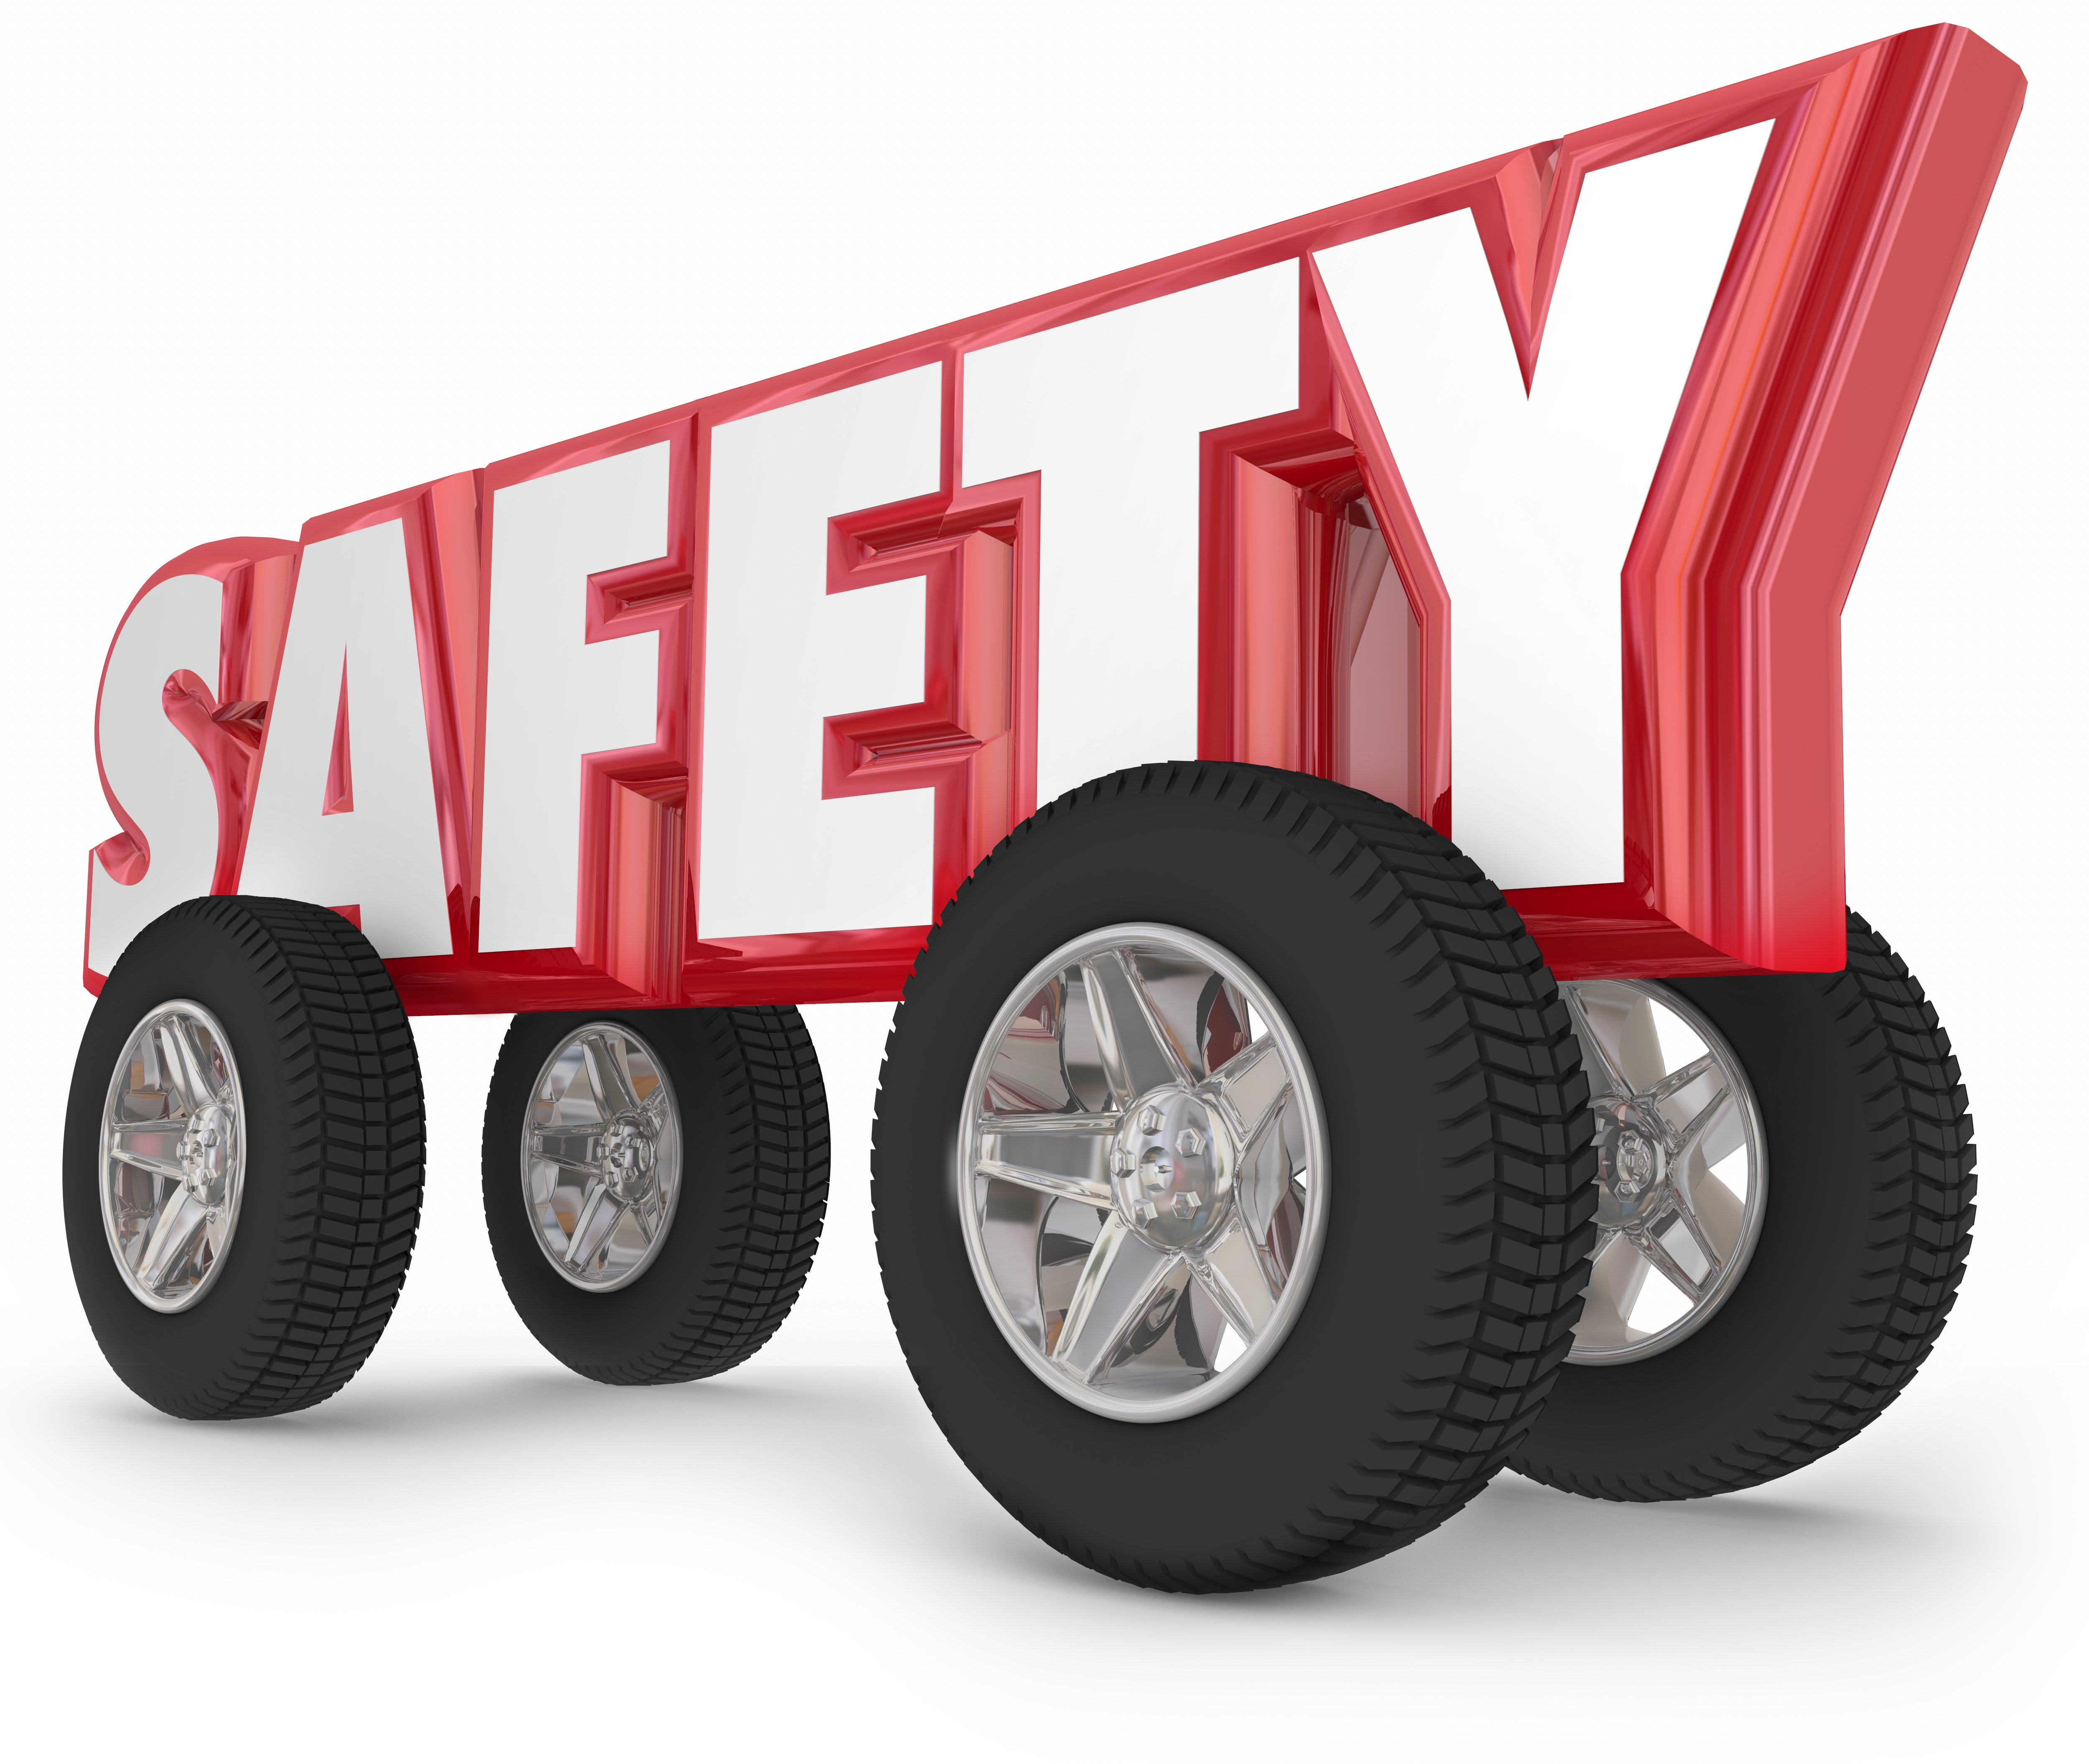 commercial vehicle safety